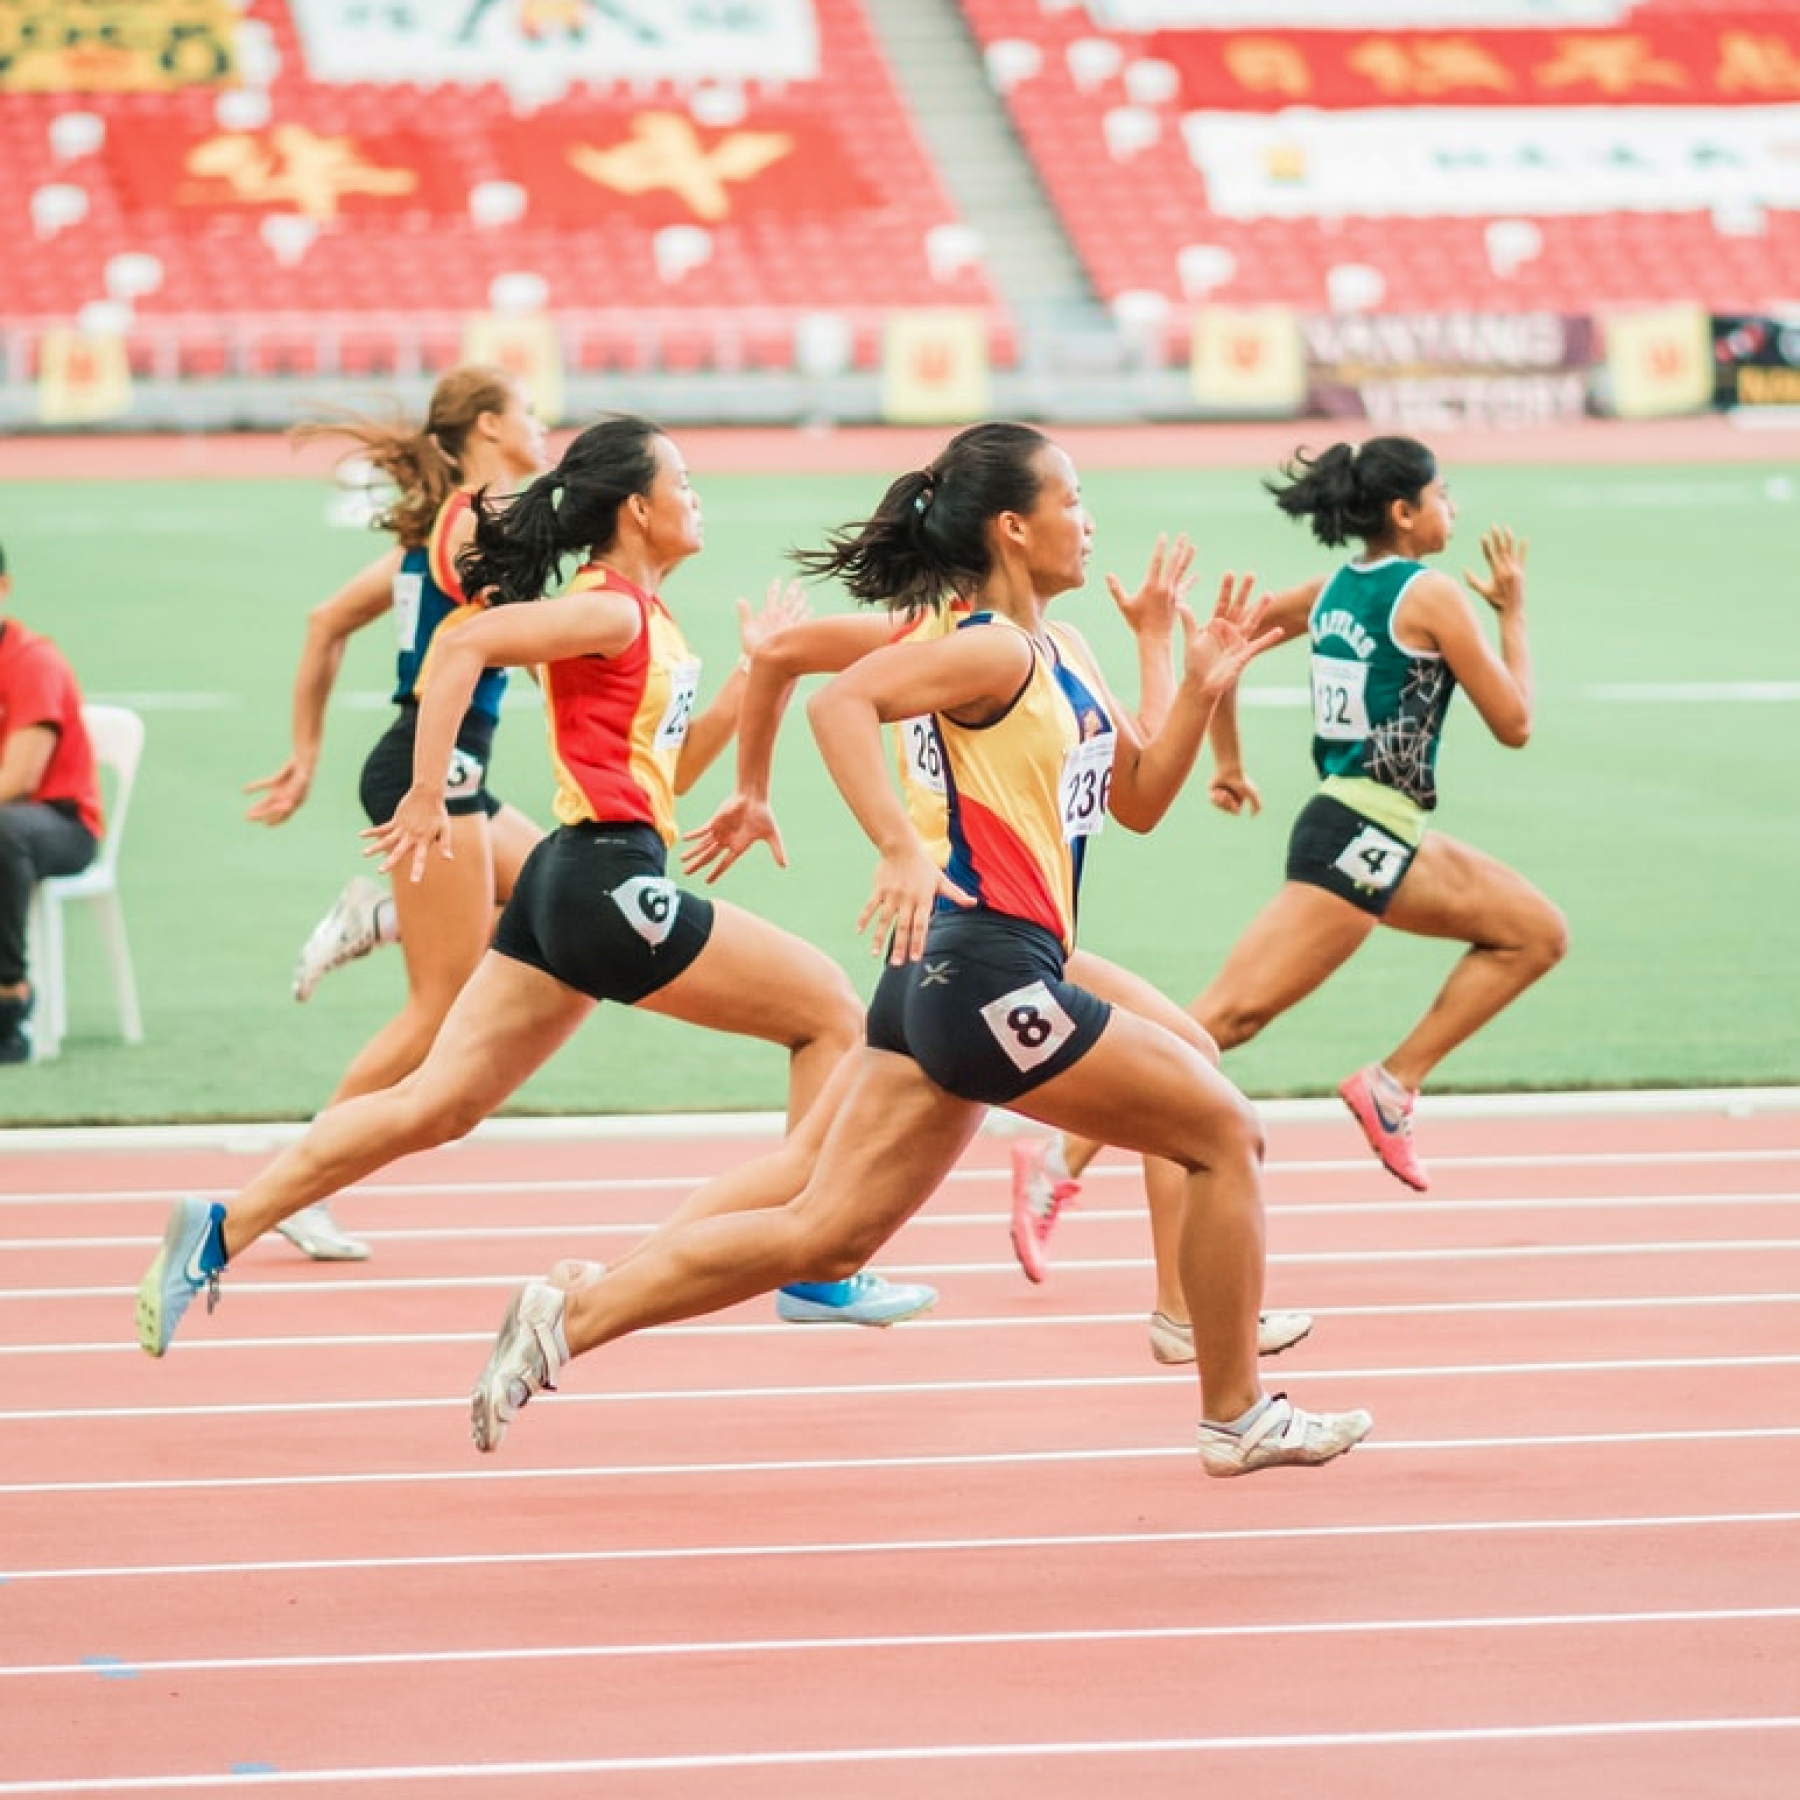 Track athletes running a race.